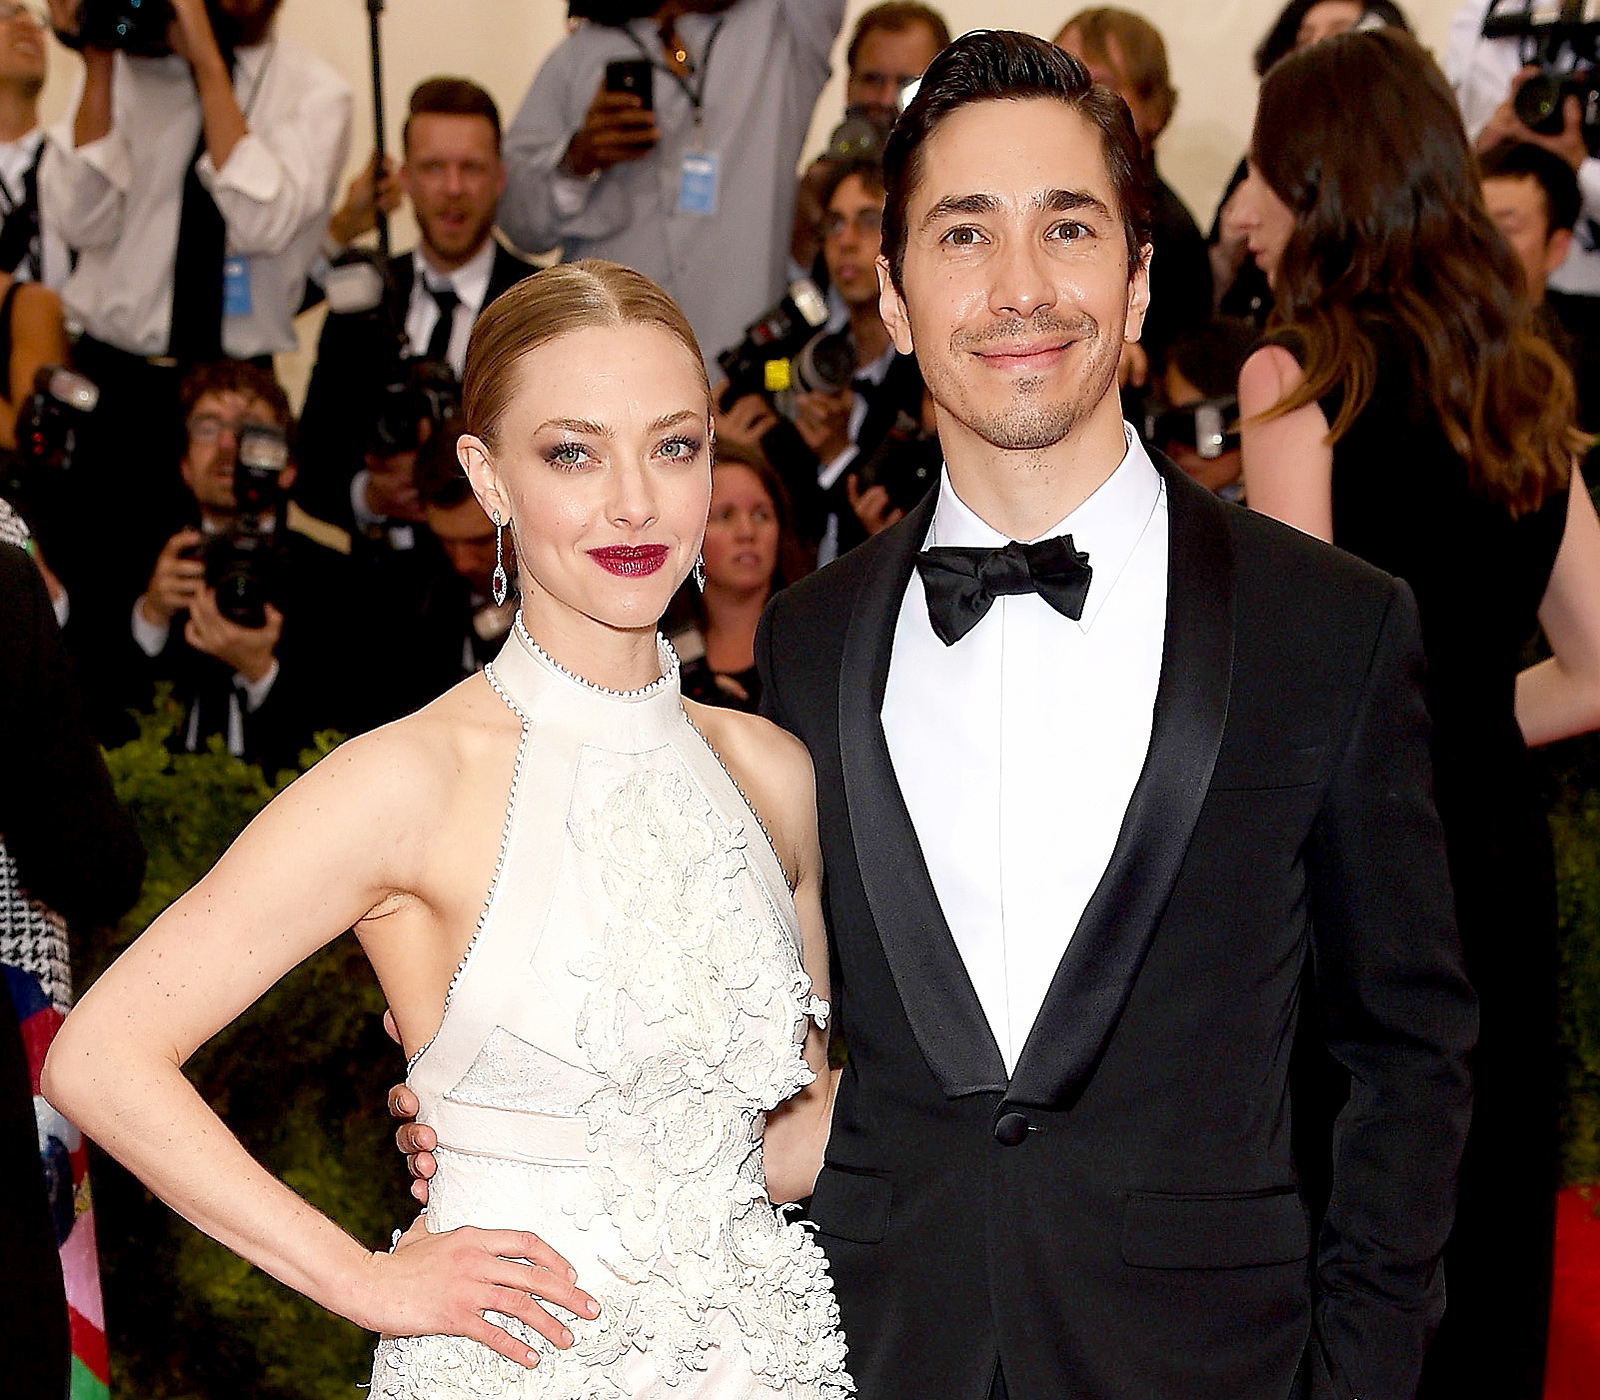 1431989194_472230850_amanda-seyfried-justin-long-zoom